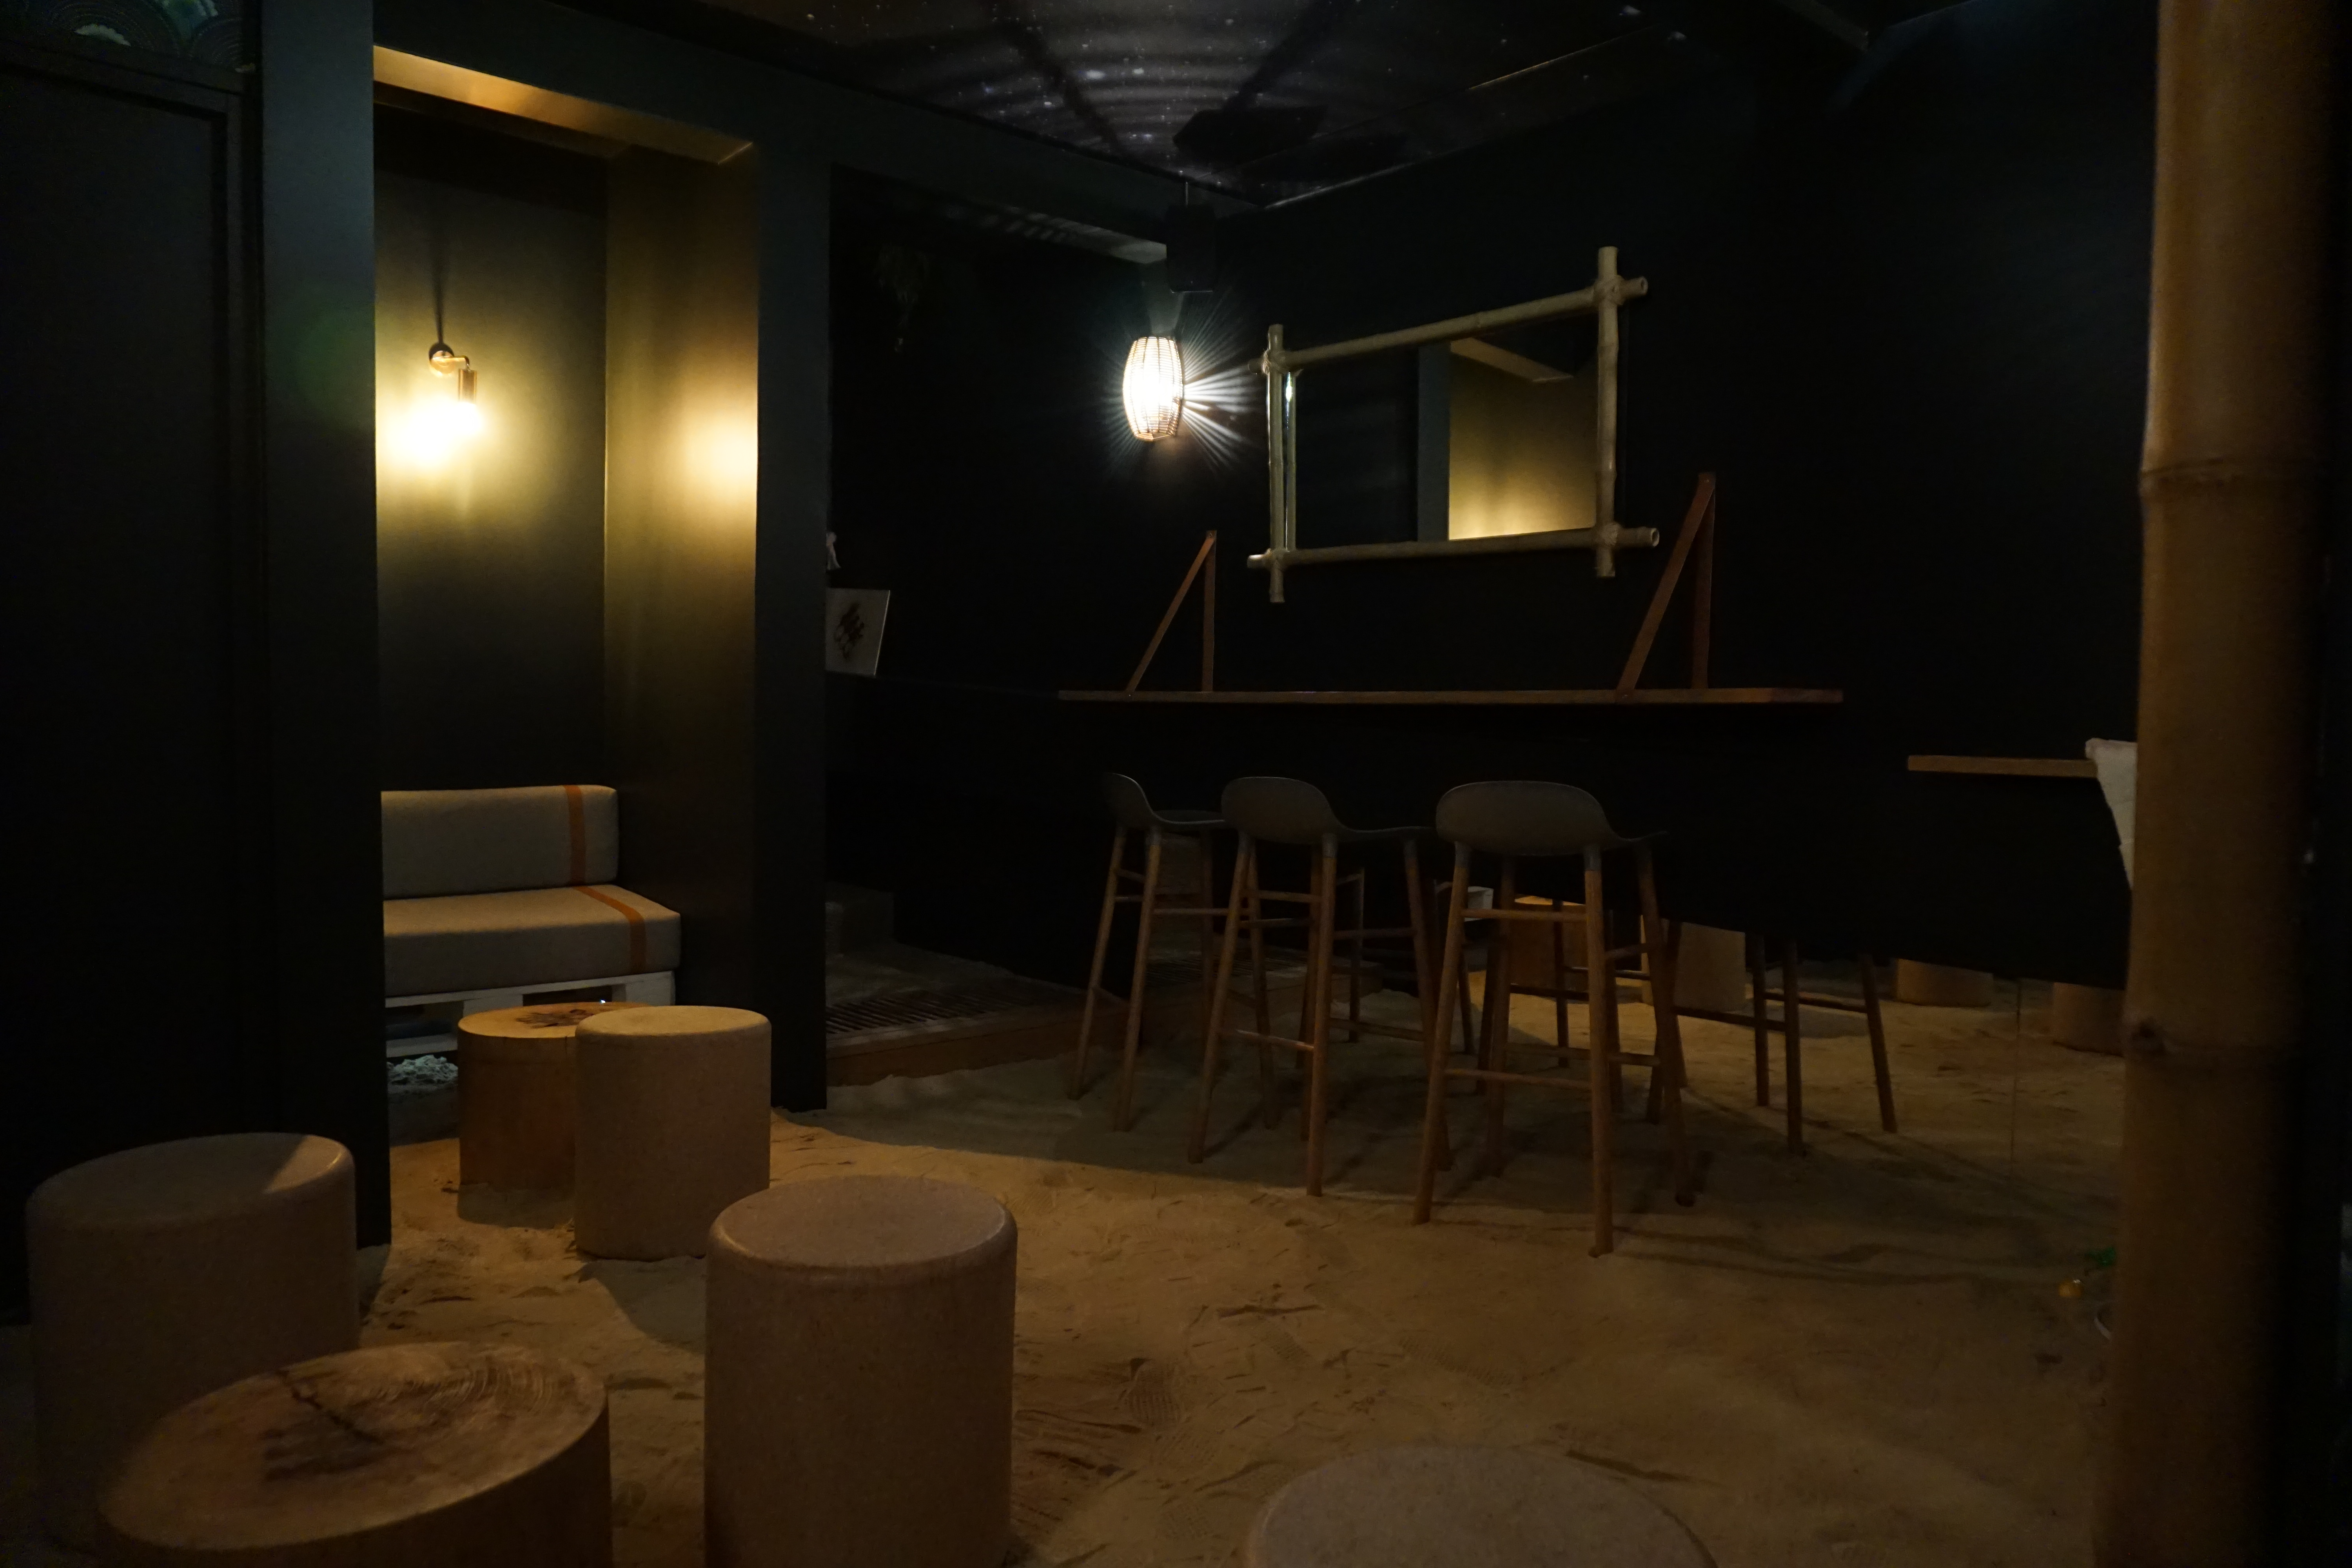 Theyu0027ve Just Dropped Their Winter Menu With A Shortlist Of Drinks That  Continue To Allow For Easy Access Like The Zesty, Ginger And Citrus  Explosion Of The ...